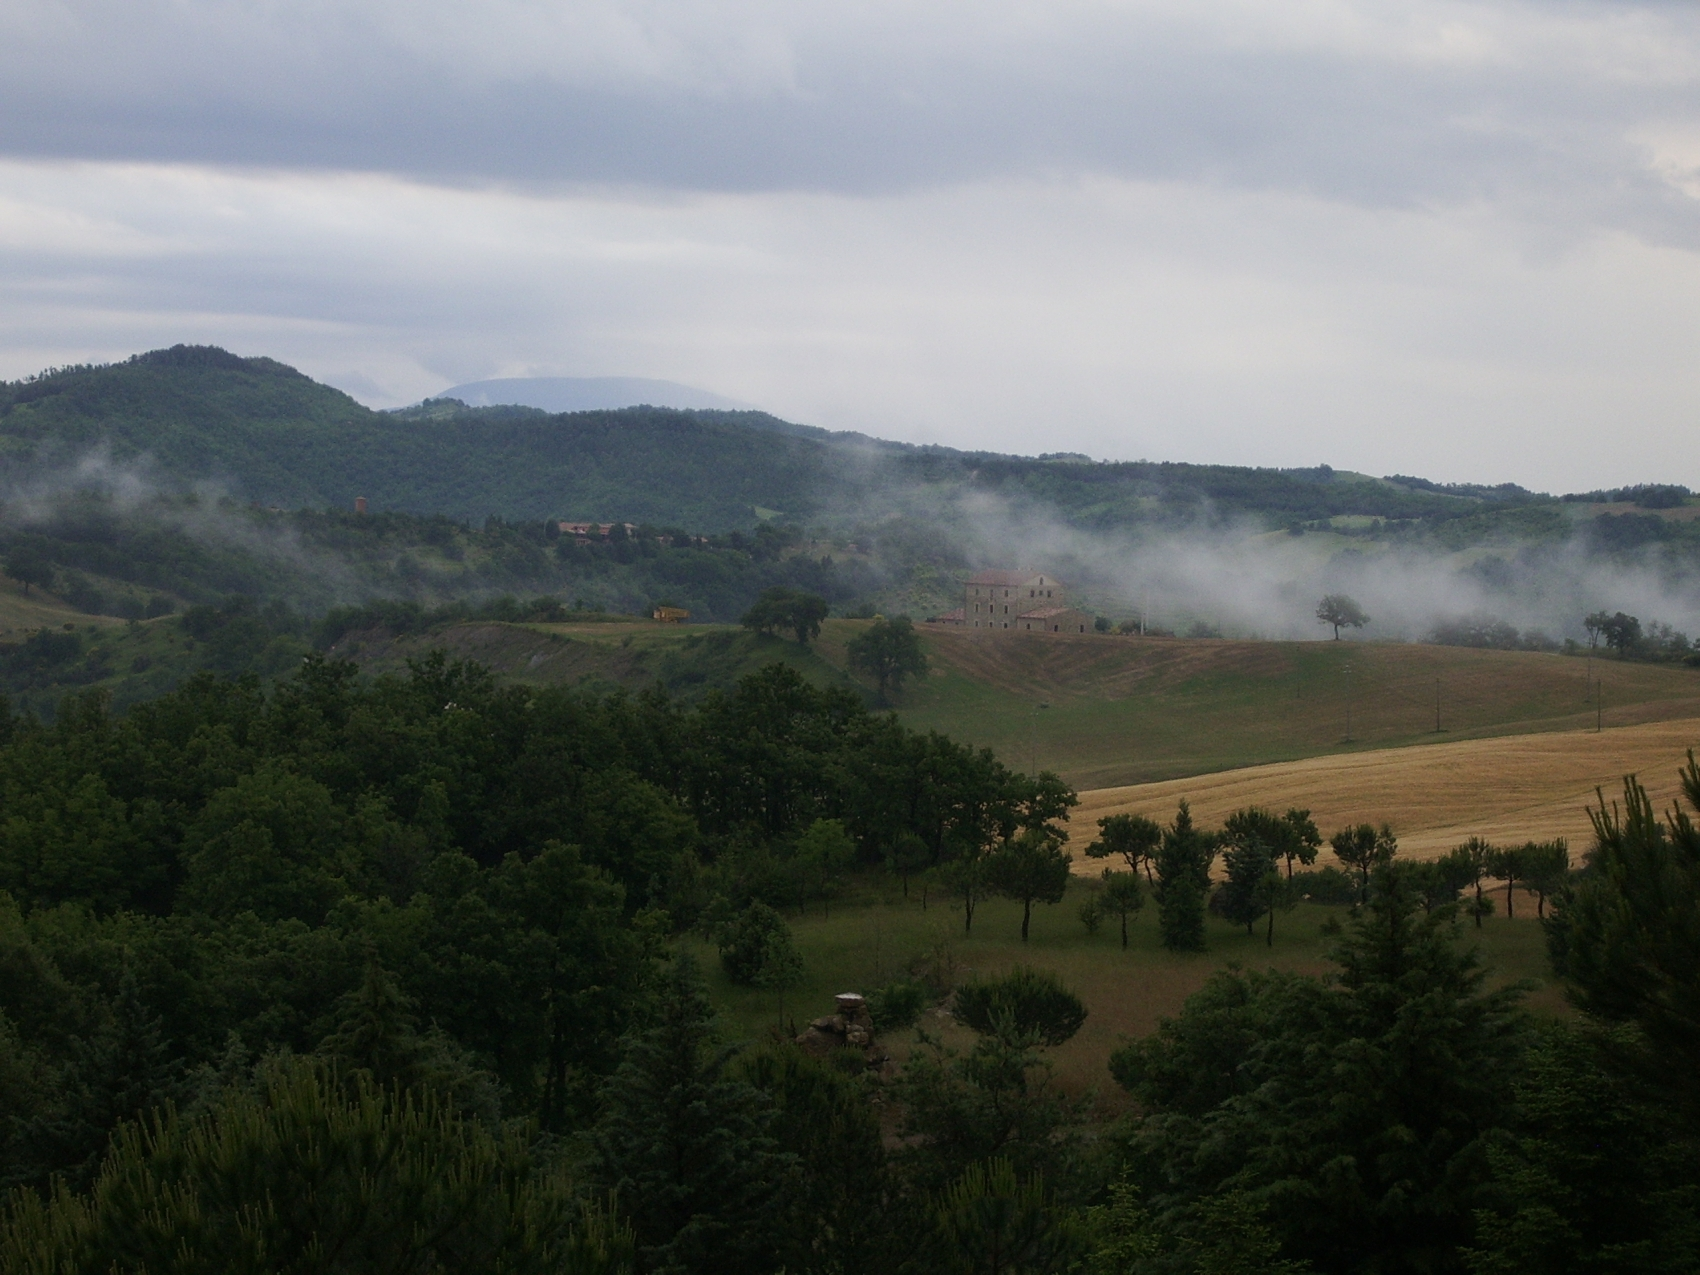 wallpaper wallpaper downloads Umbrian Farmhouse and Hills in 1700x1275